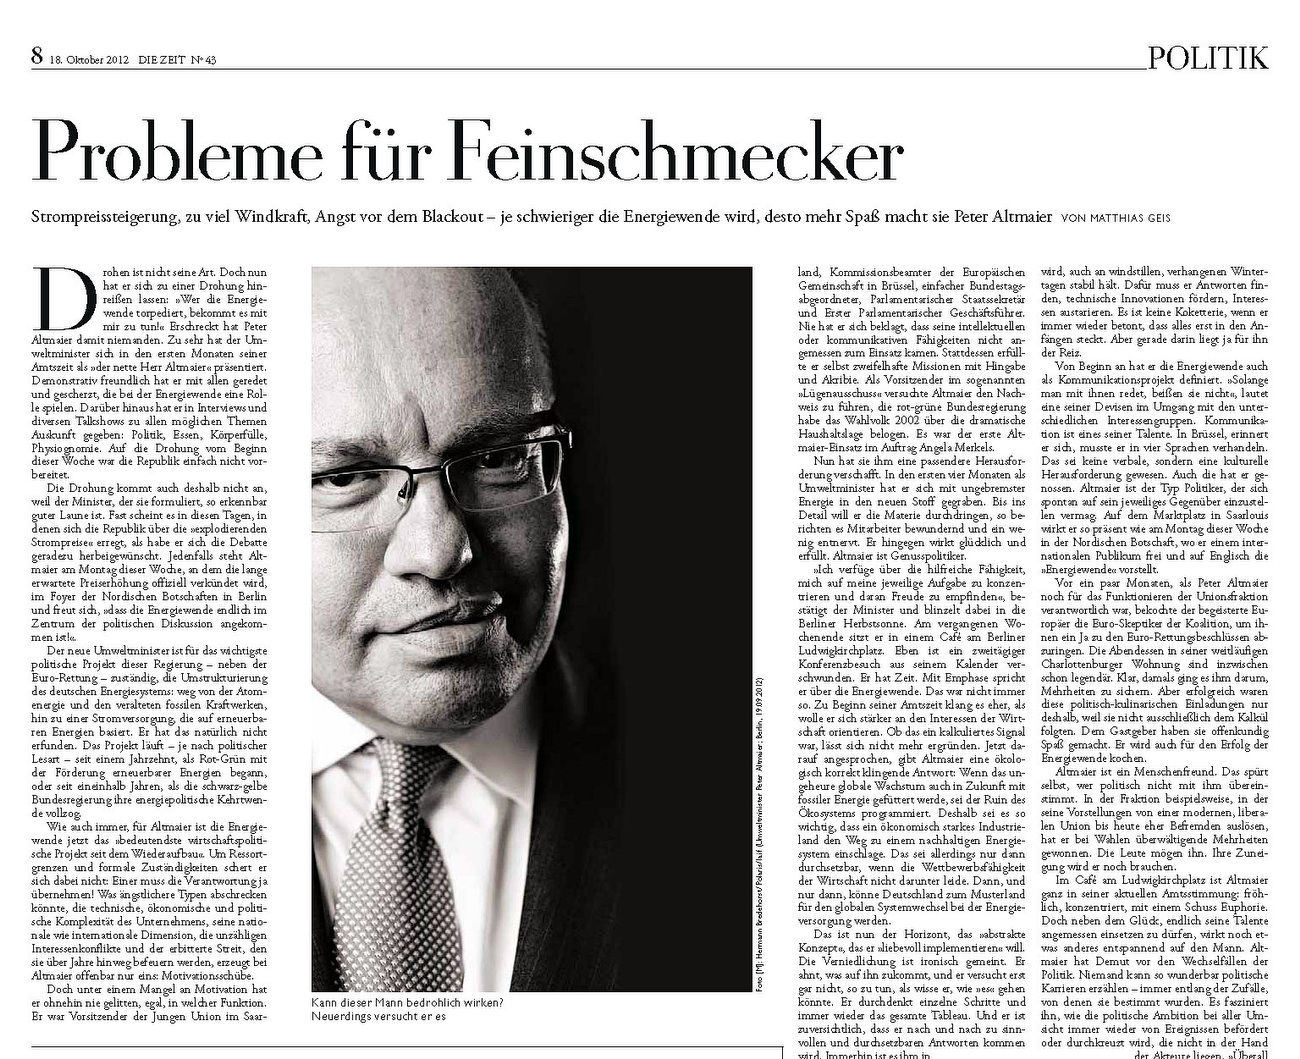 Die Zeit, German Minister for the environment, Peter Altmaier, 10/2012